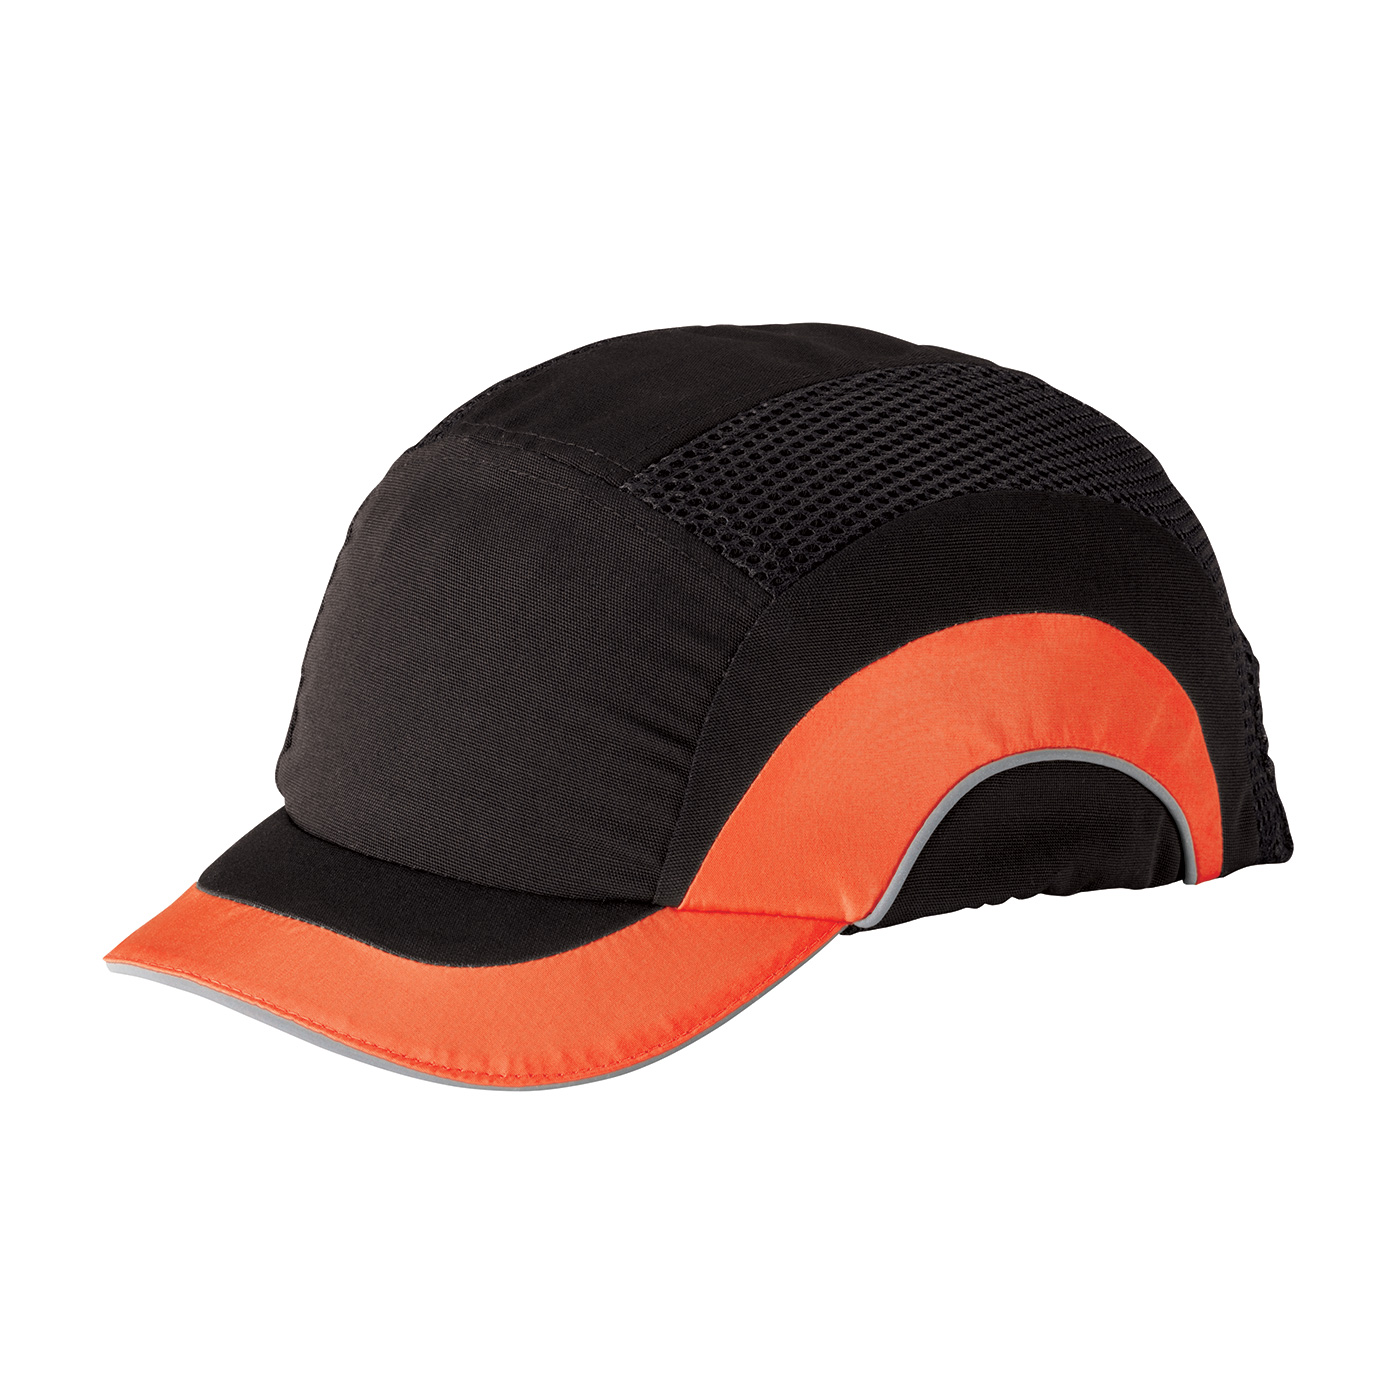 HardCap A1+™ Baseball Style Bump Cap with HDPE Protective Liner and Adjustable Back - Short Brim - Black/Hi-Viz Orange